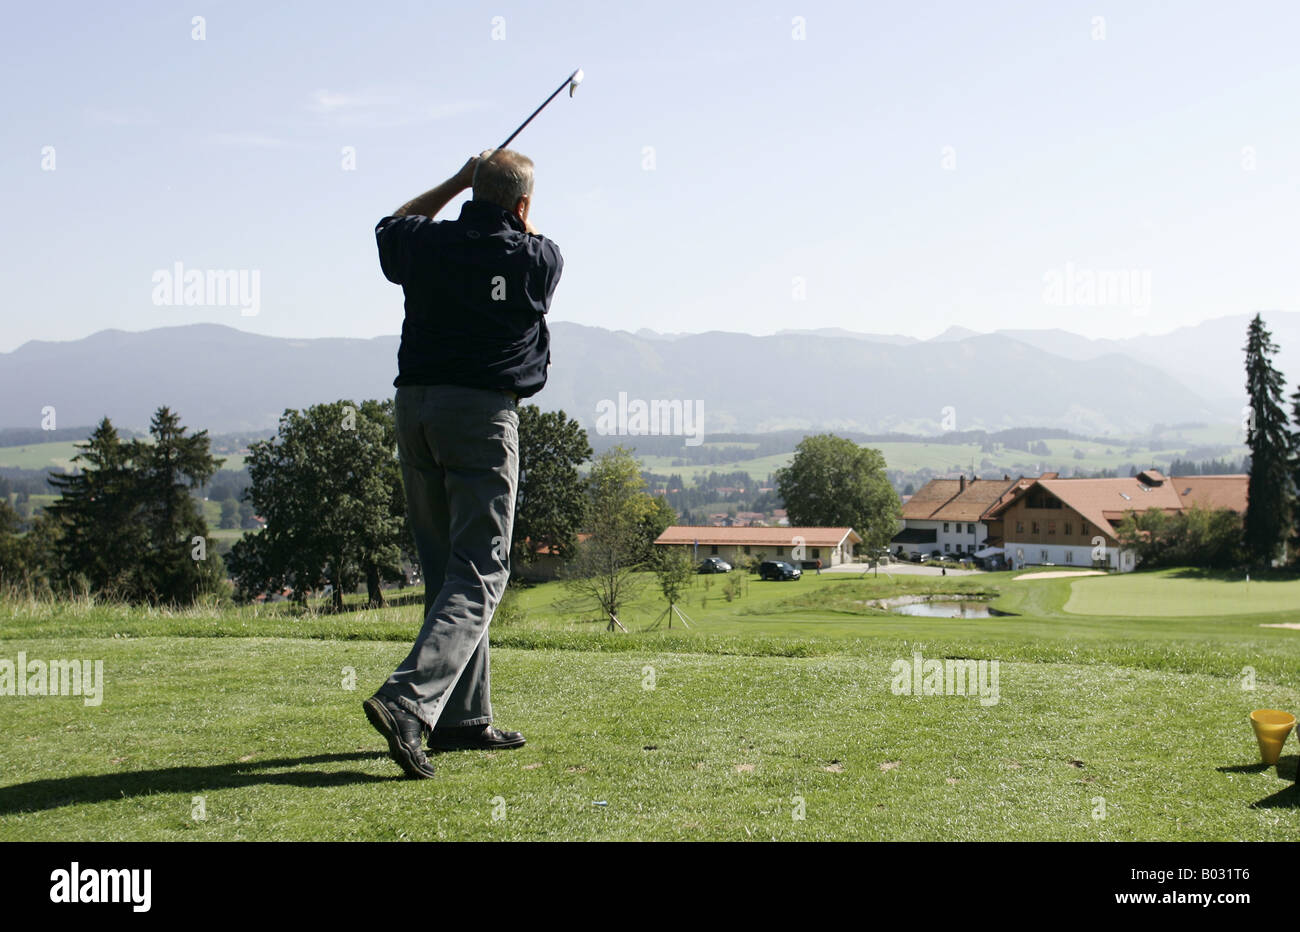 Golfer teeing off approaching hole 18 near the clubhouse. - Stock Image